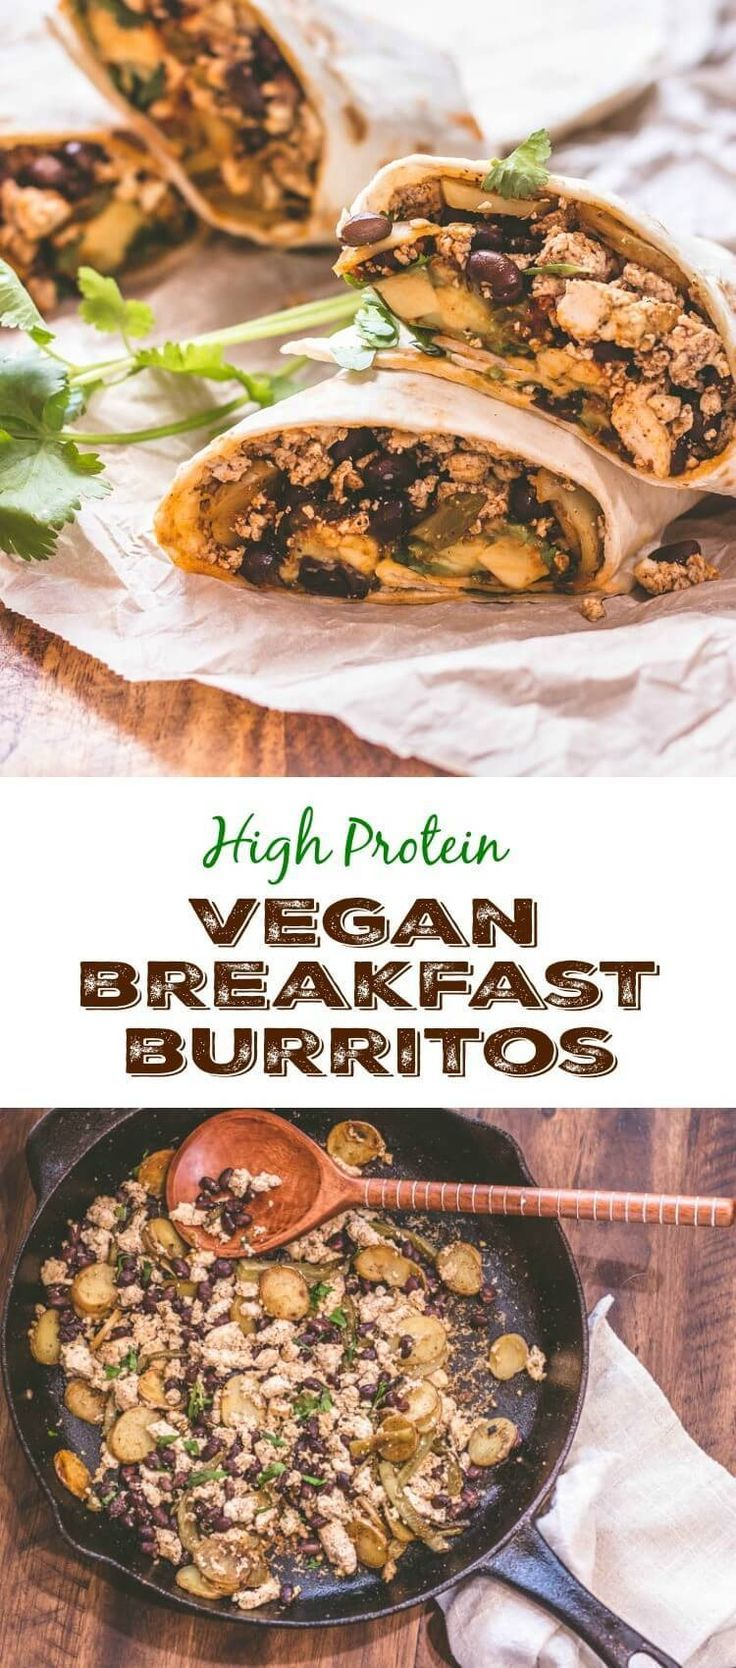 High Protein Vegan Breakfast Burritos - healthy and nutritious with nopales, black beans, potatoes, tofu, red chile sauce, and avocado! Nopalitos | Breakfast burritos | Vegan recipes